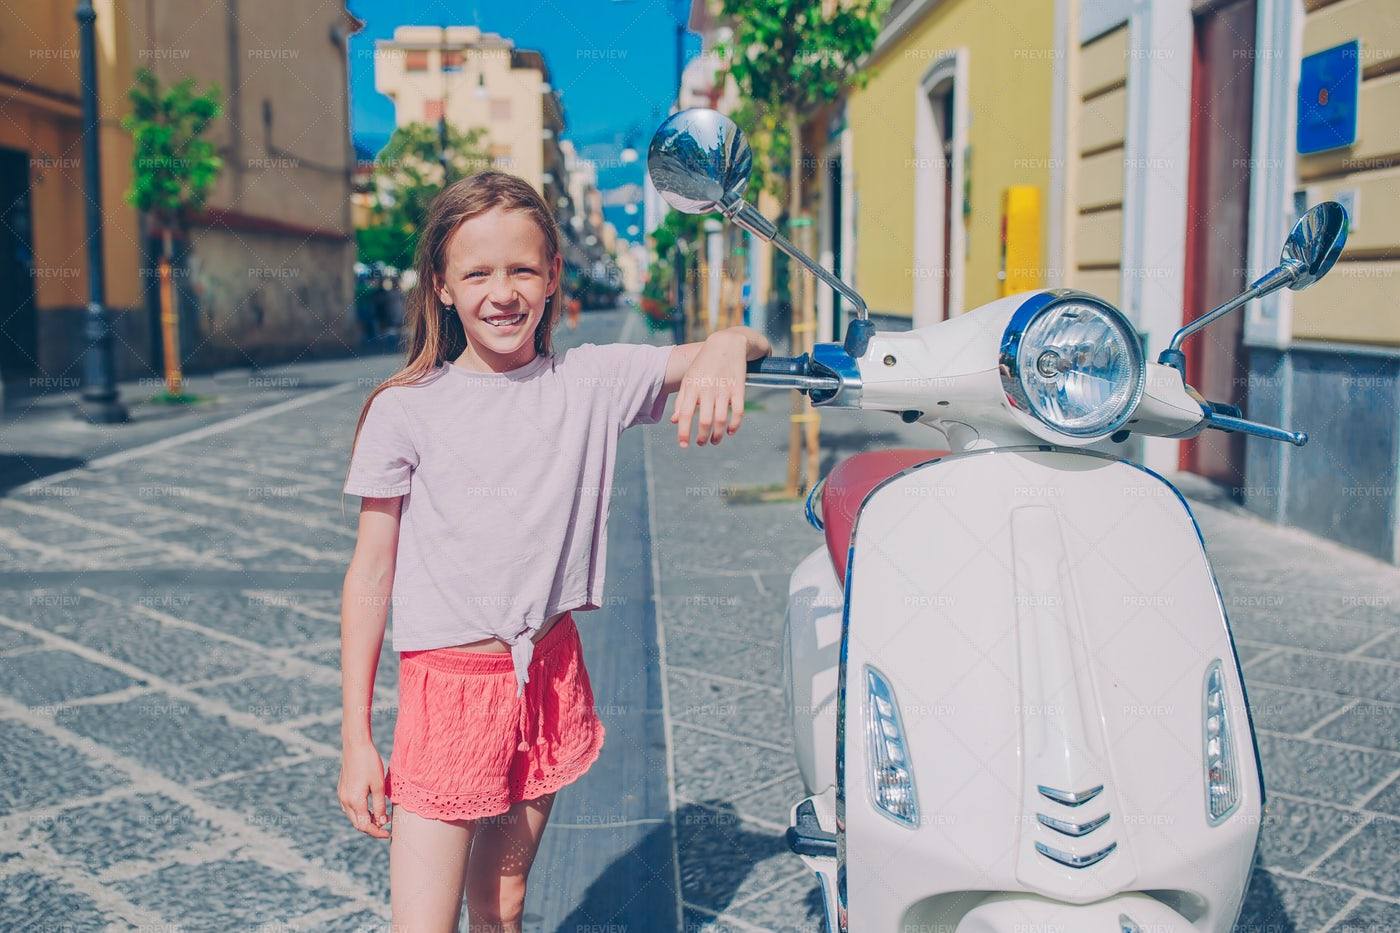 Little Girl Next To A Scooter: Stock Photos